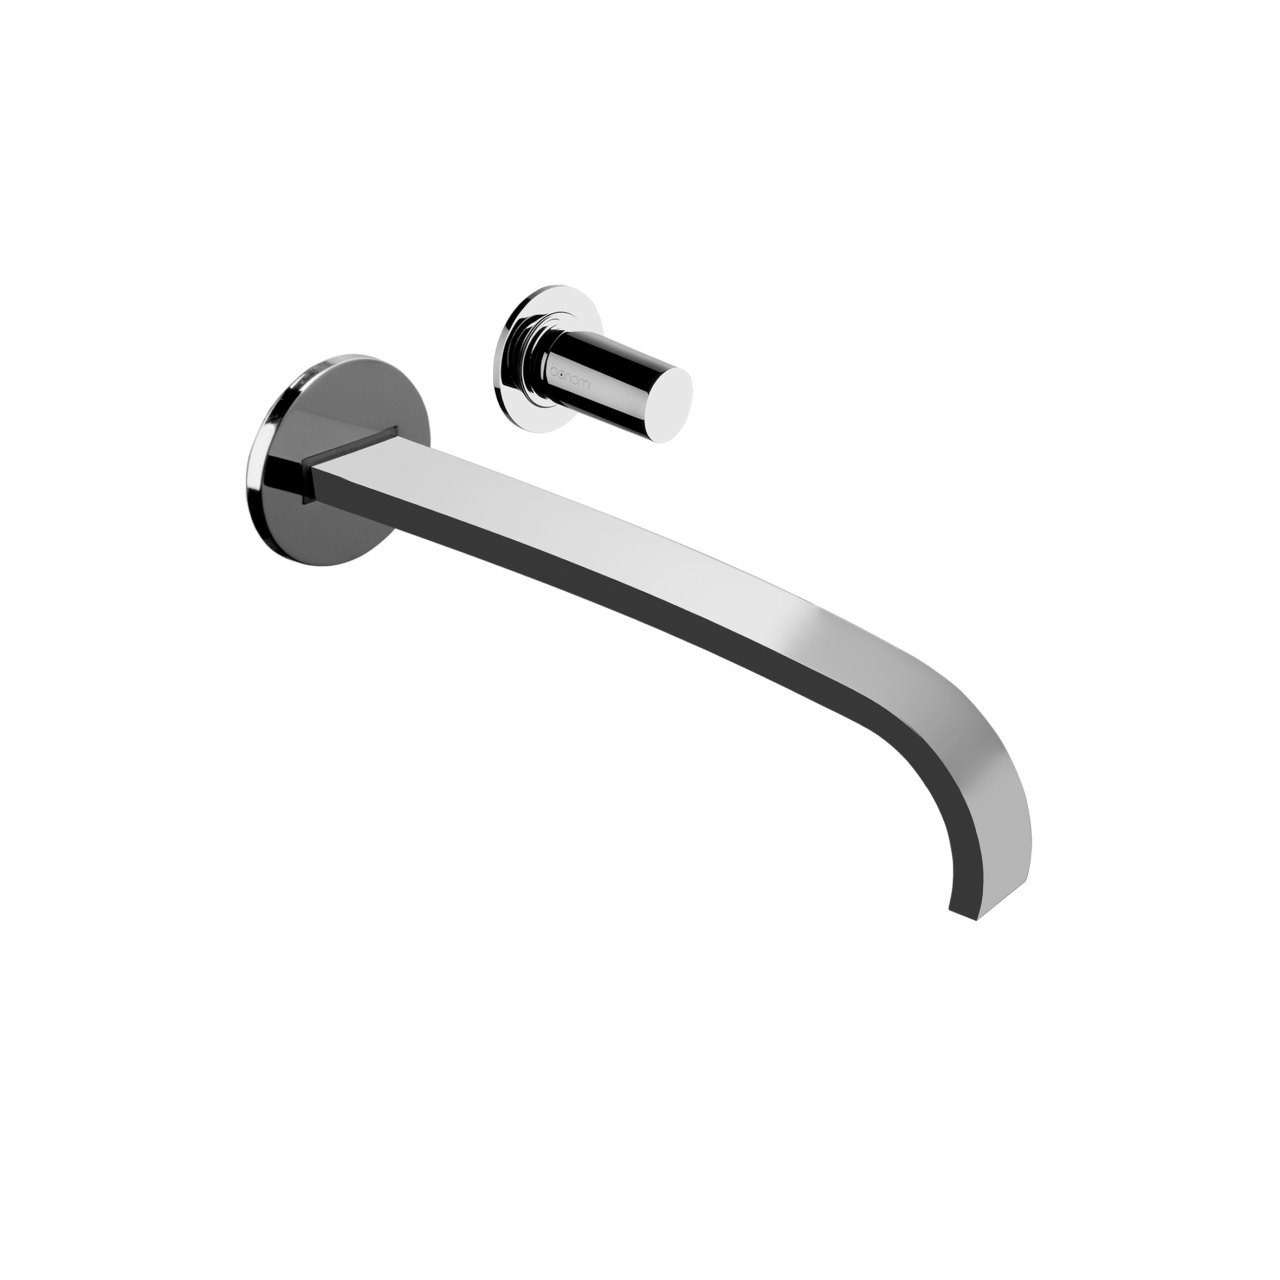 Bonomi Arco Wall Mounted Bath Mixer